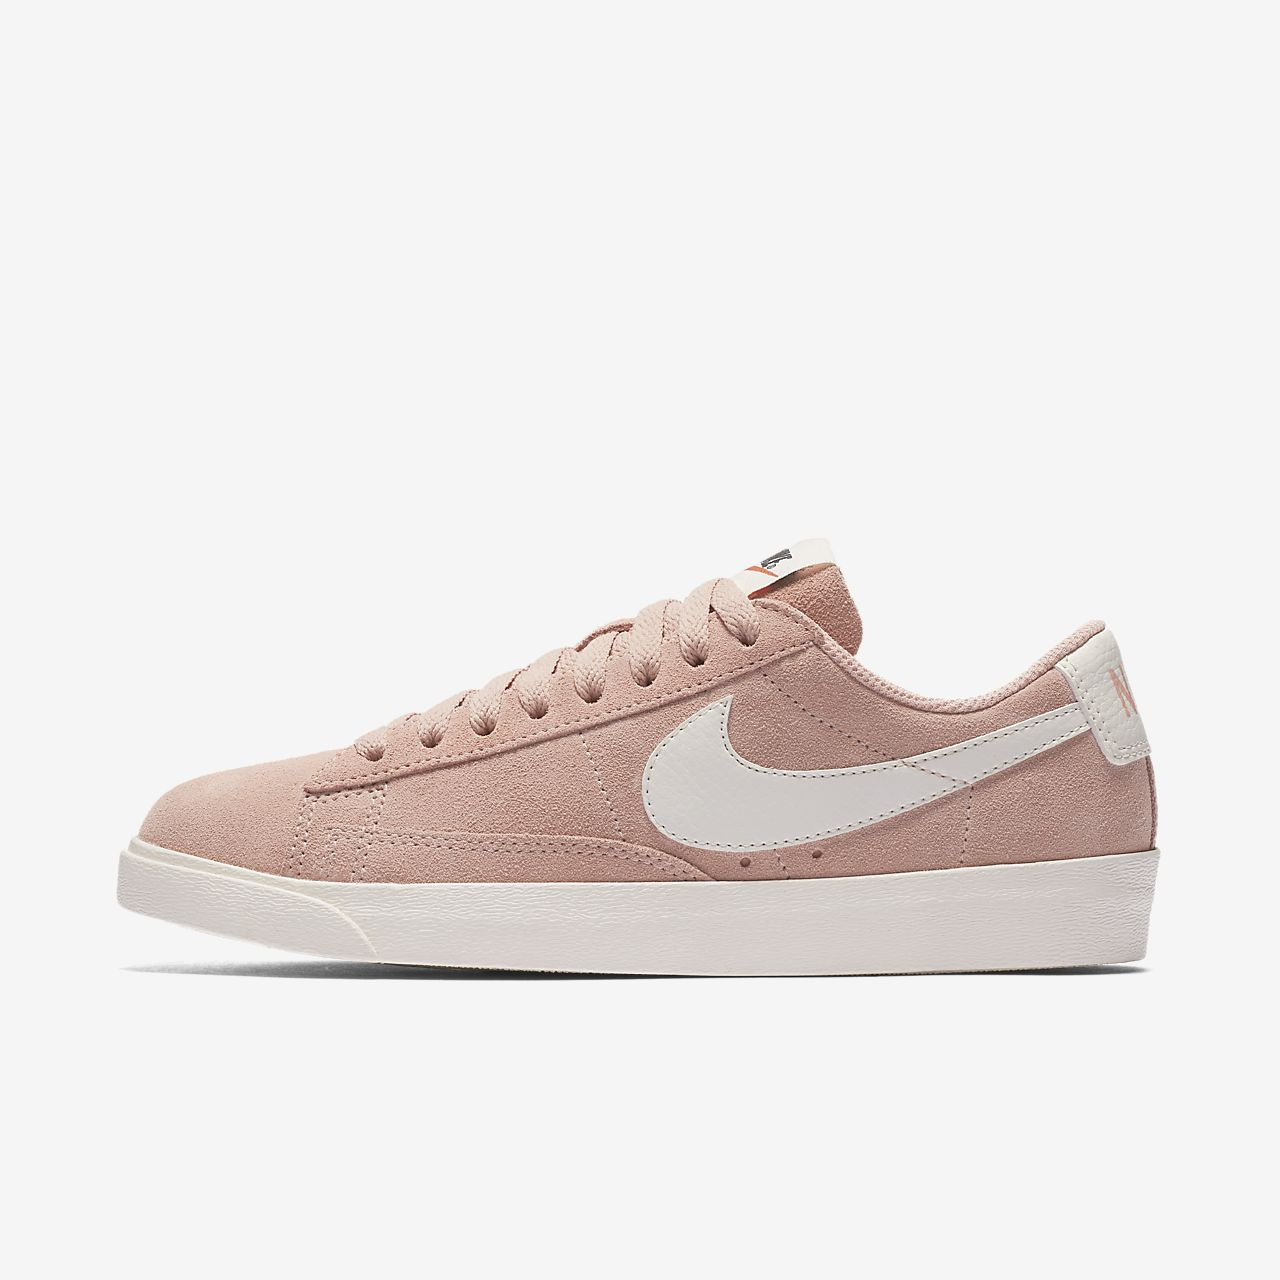 ... Chaussure Nike Blazer Low pour Femme